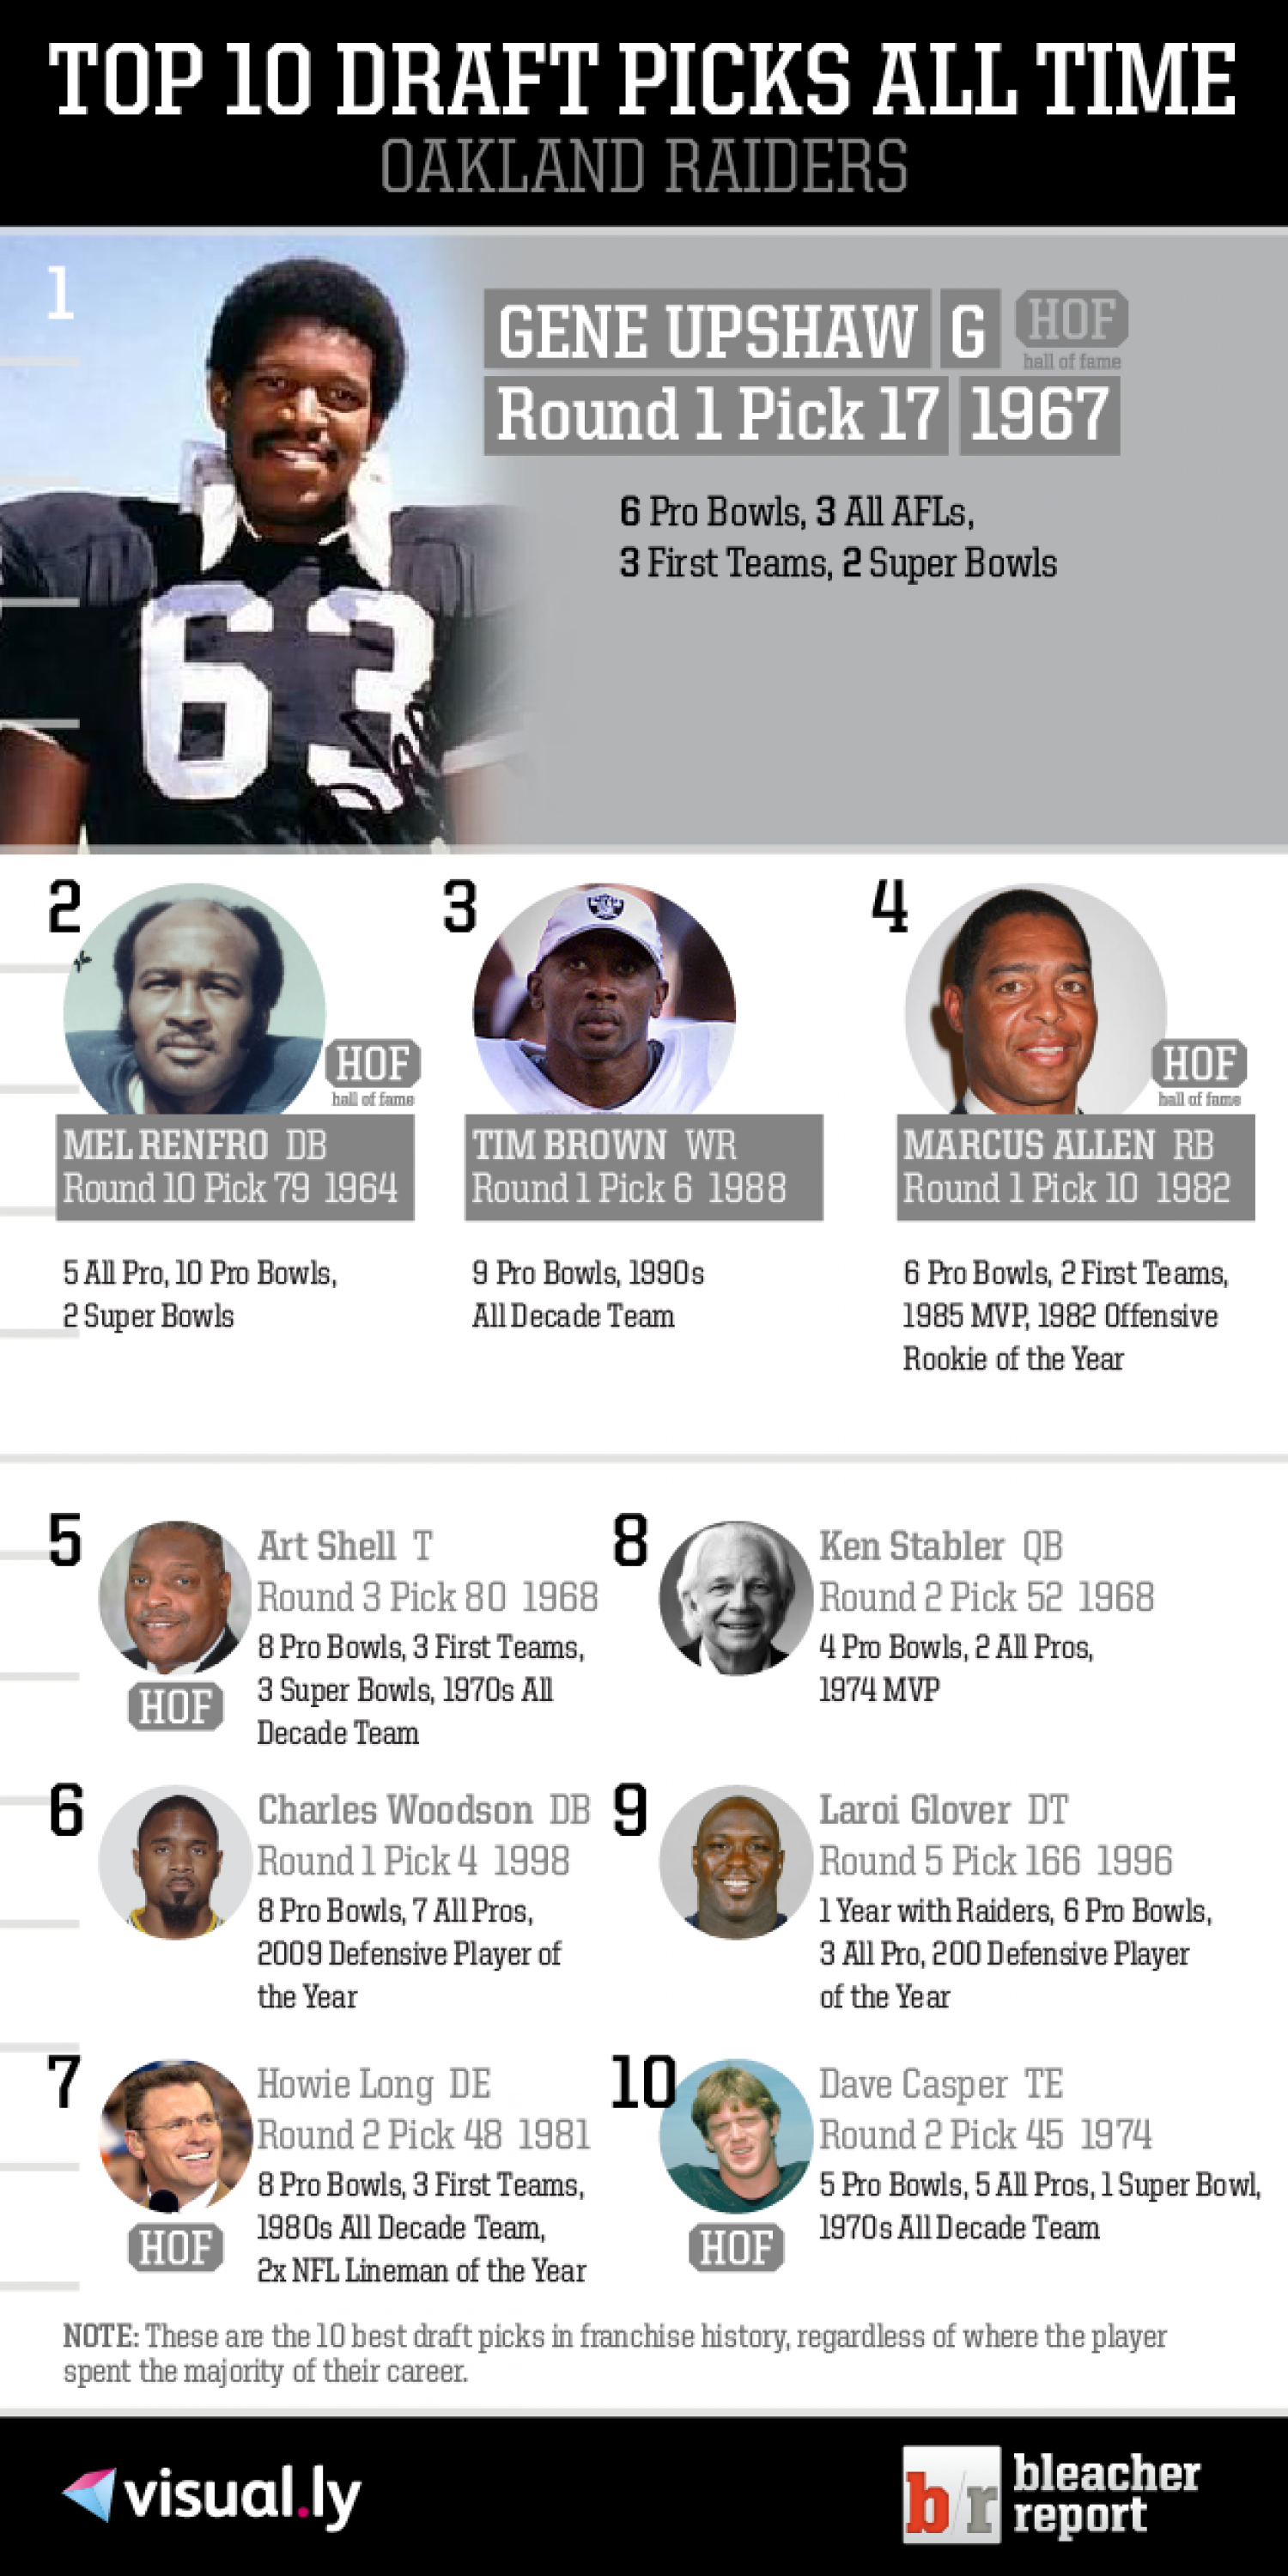 Top 10 Draft Picks of All Time: Oakland Raiders Infographic